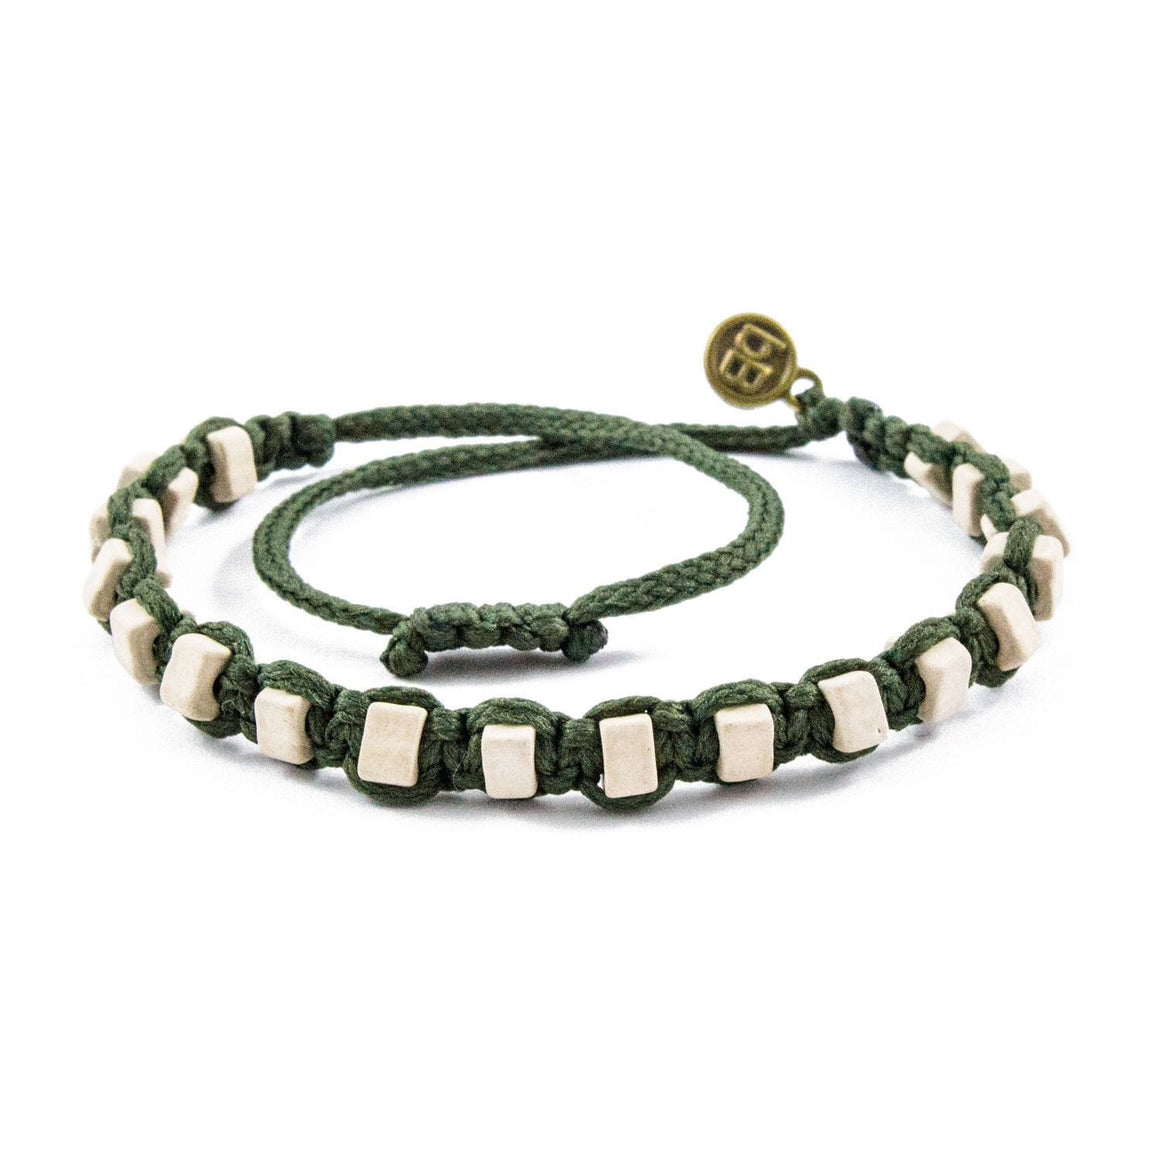 White Andes Military Green macrame artisan bracelets cover